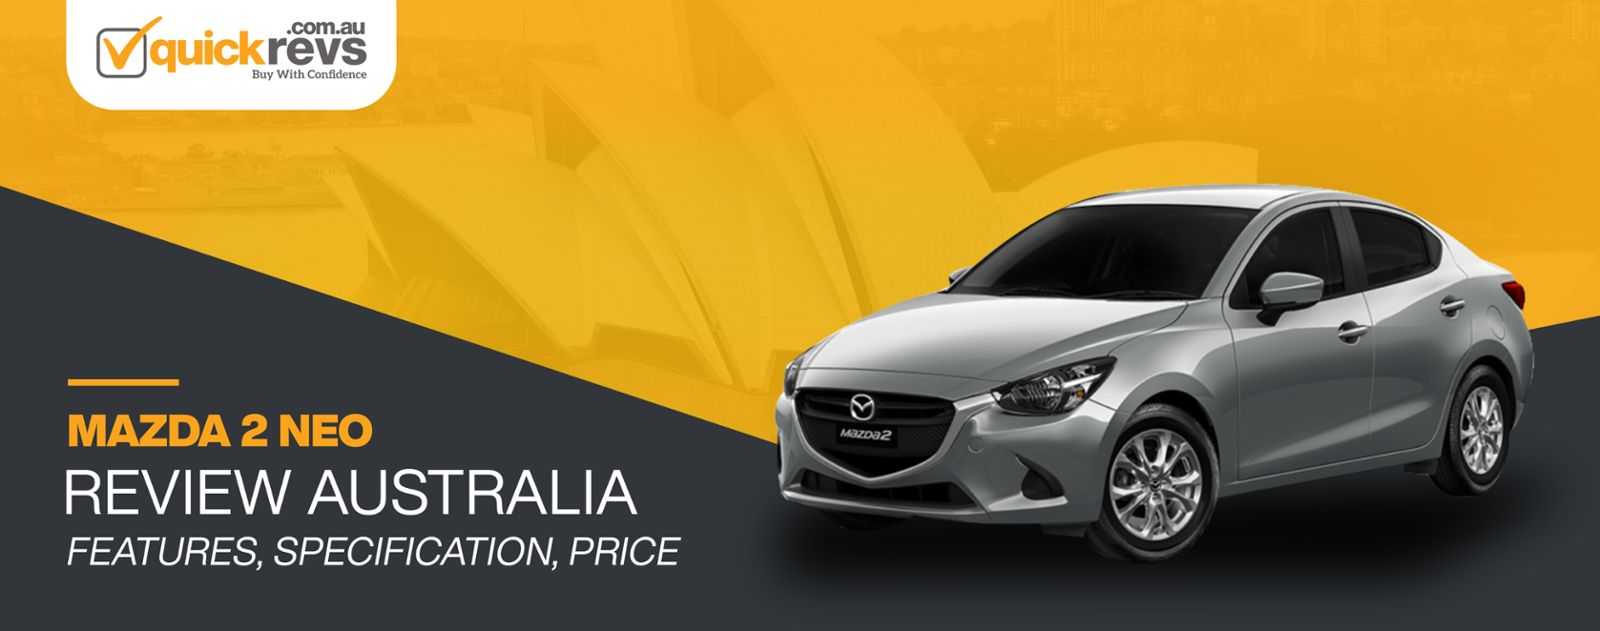 Mazda 2 Neo Review Australia | Features, Specification, Price